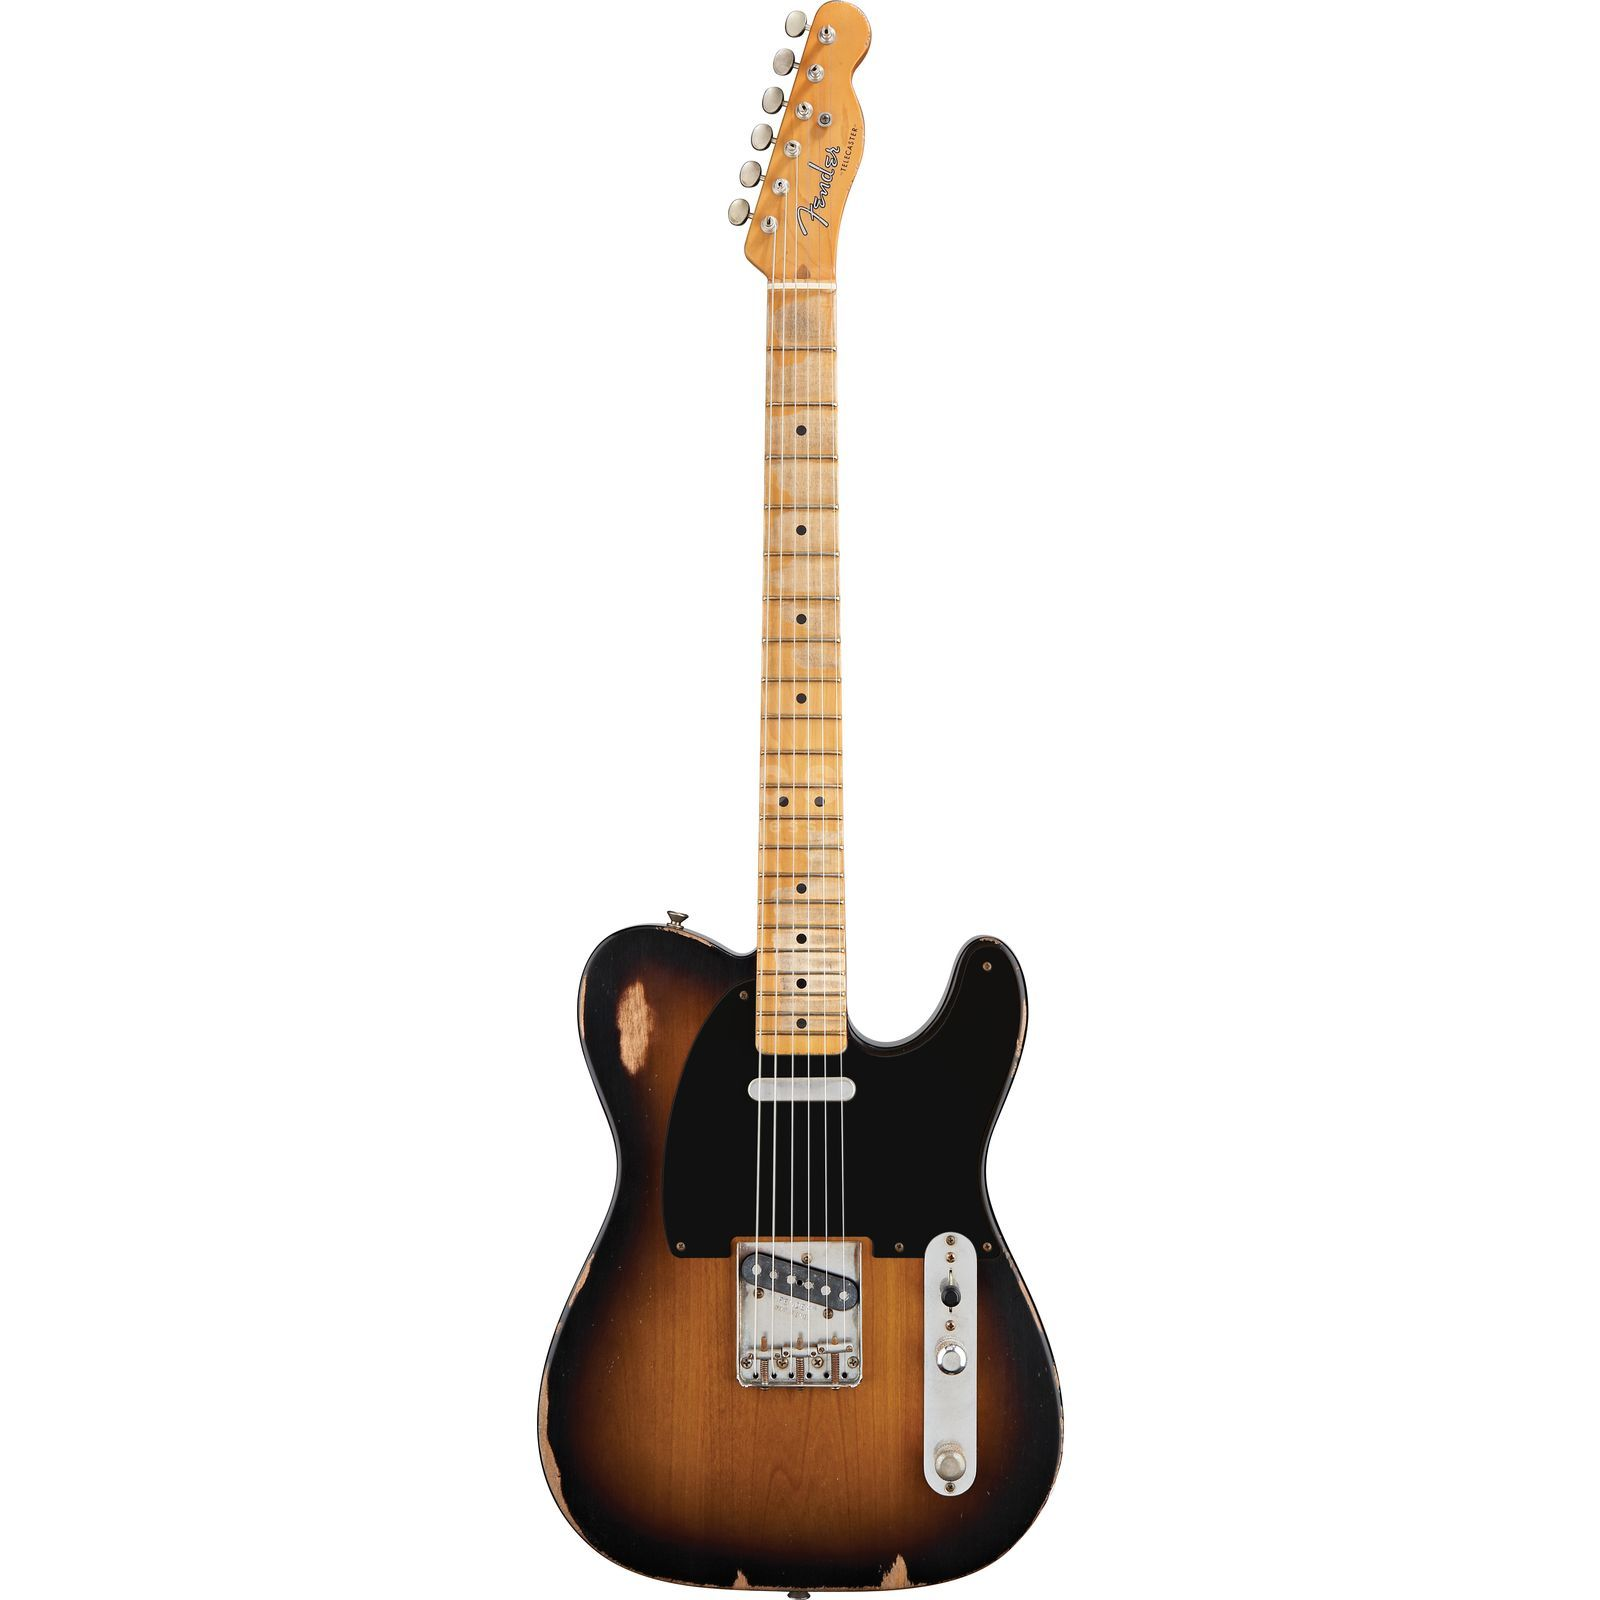 Fender Road Worn 50s Tele MN 2CS 2-Color Sunburst, inkl. Bag Produktbild